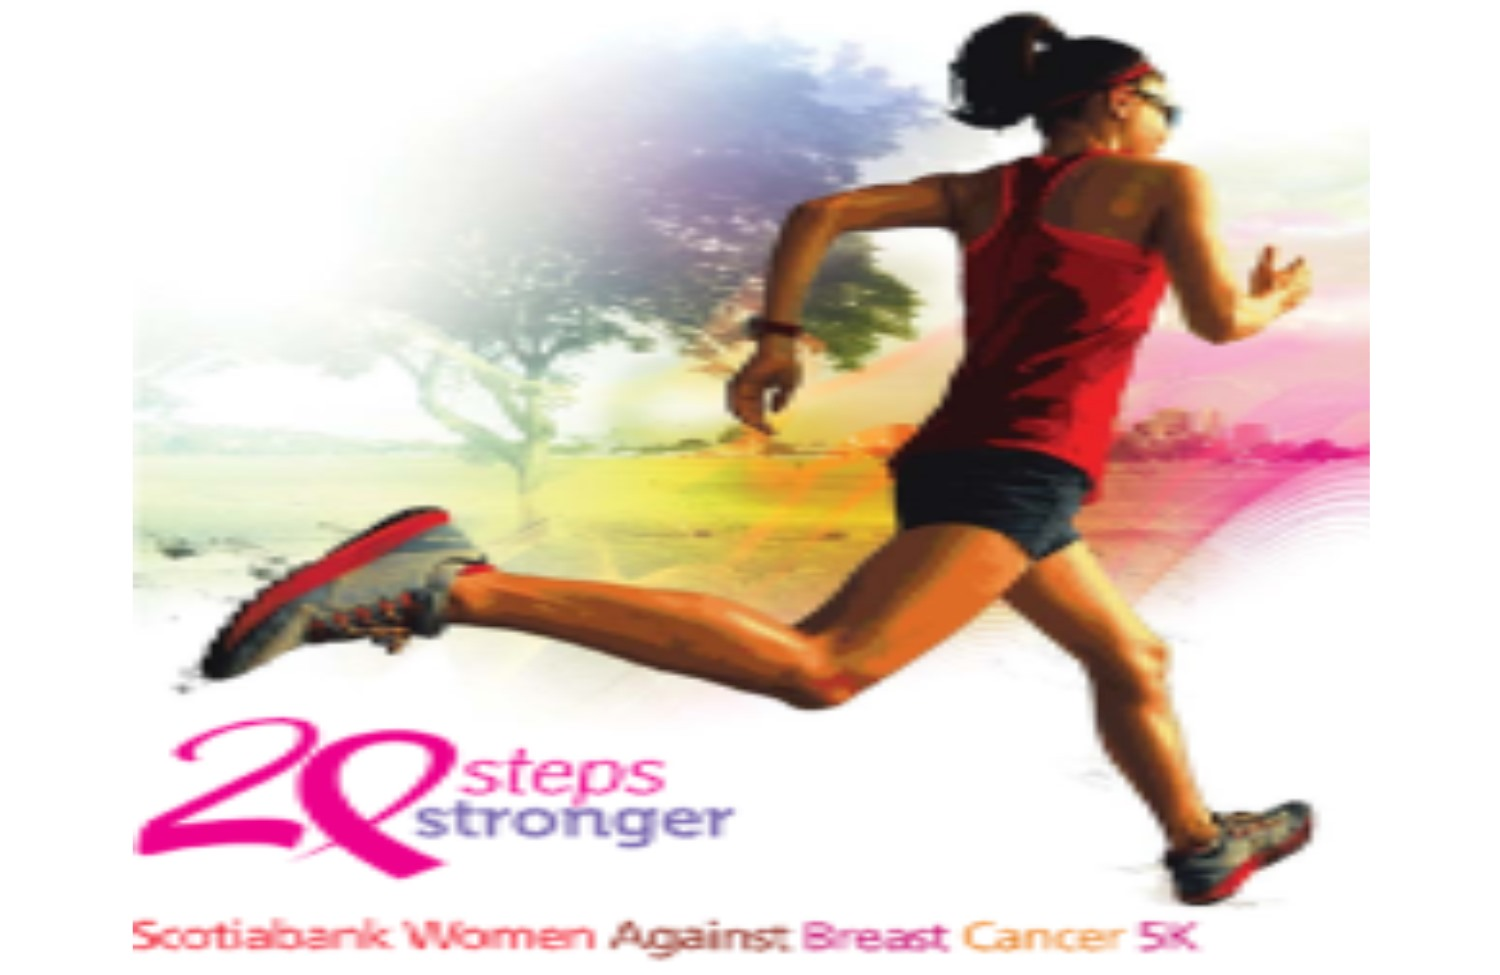 Scotiabank Women Against Breast Cancer 5k